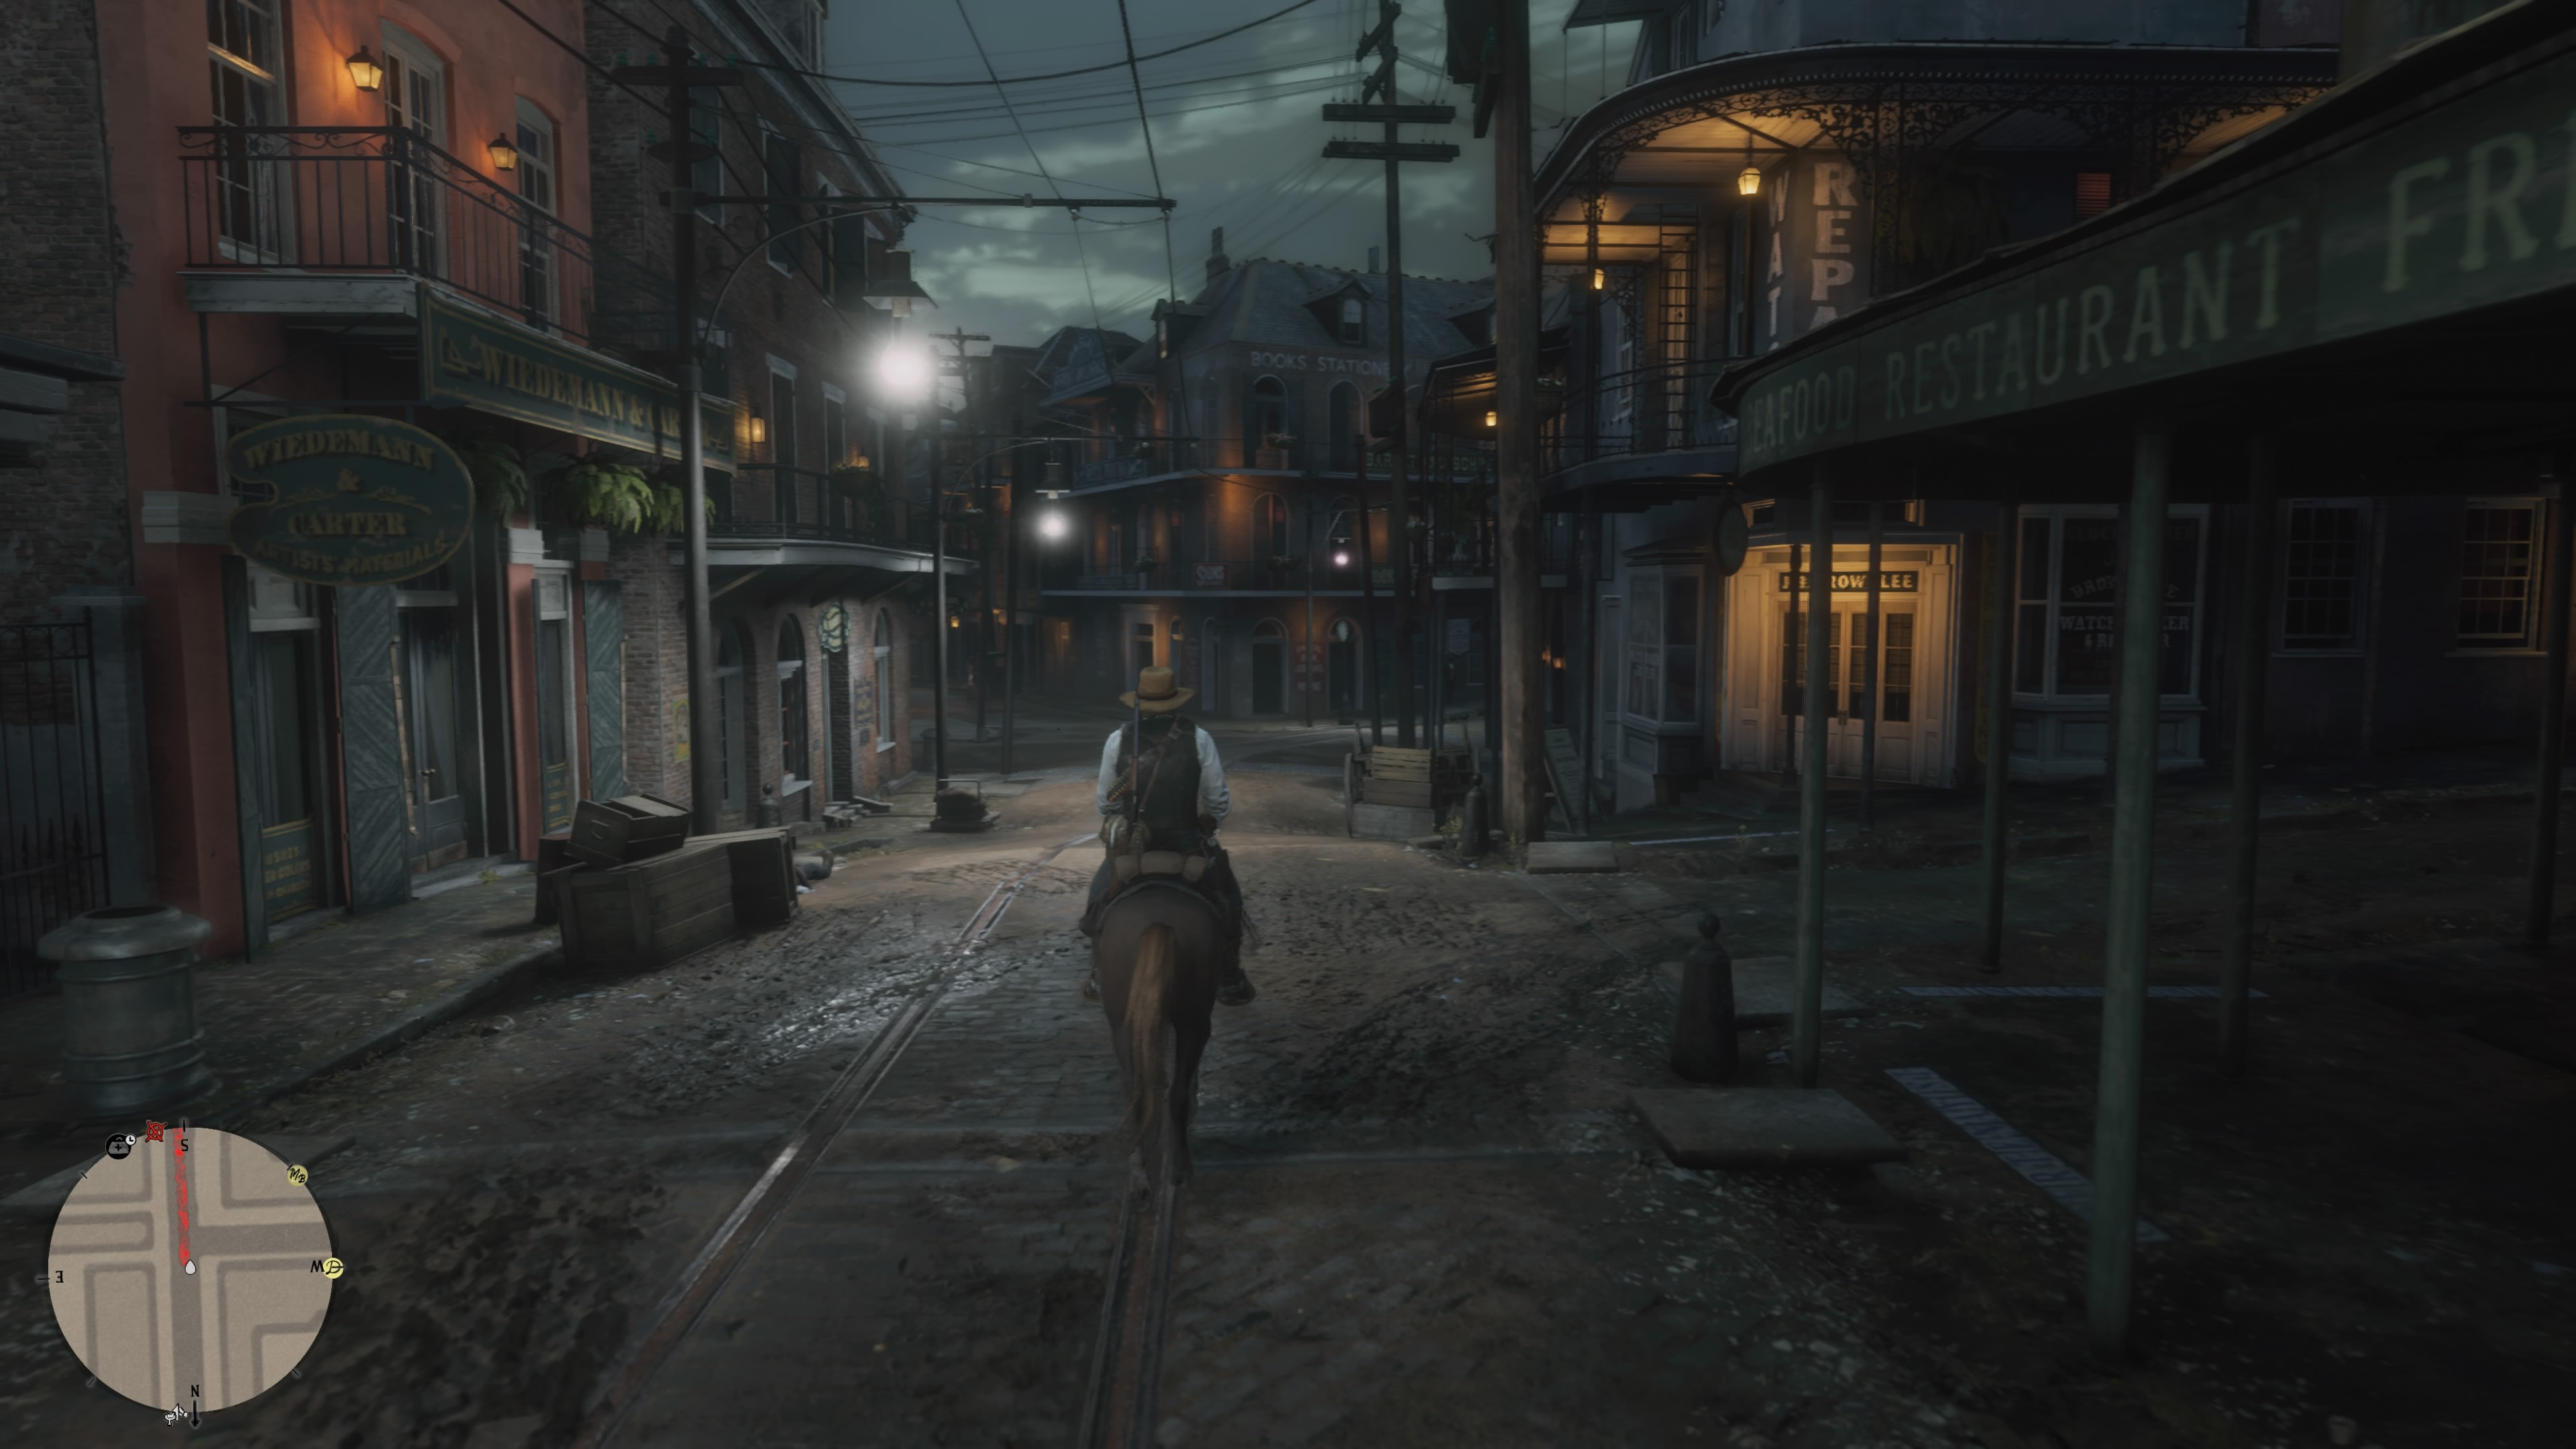 9c017322060119c07ad783c22a3bbfe8.jpg - Red Dead Redemption 2